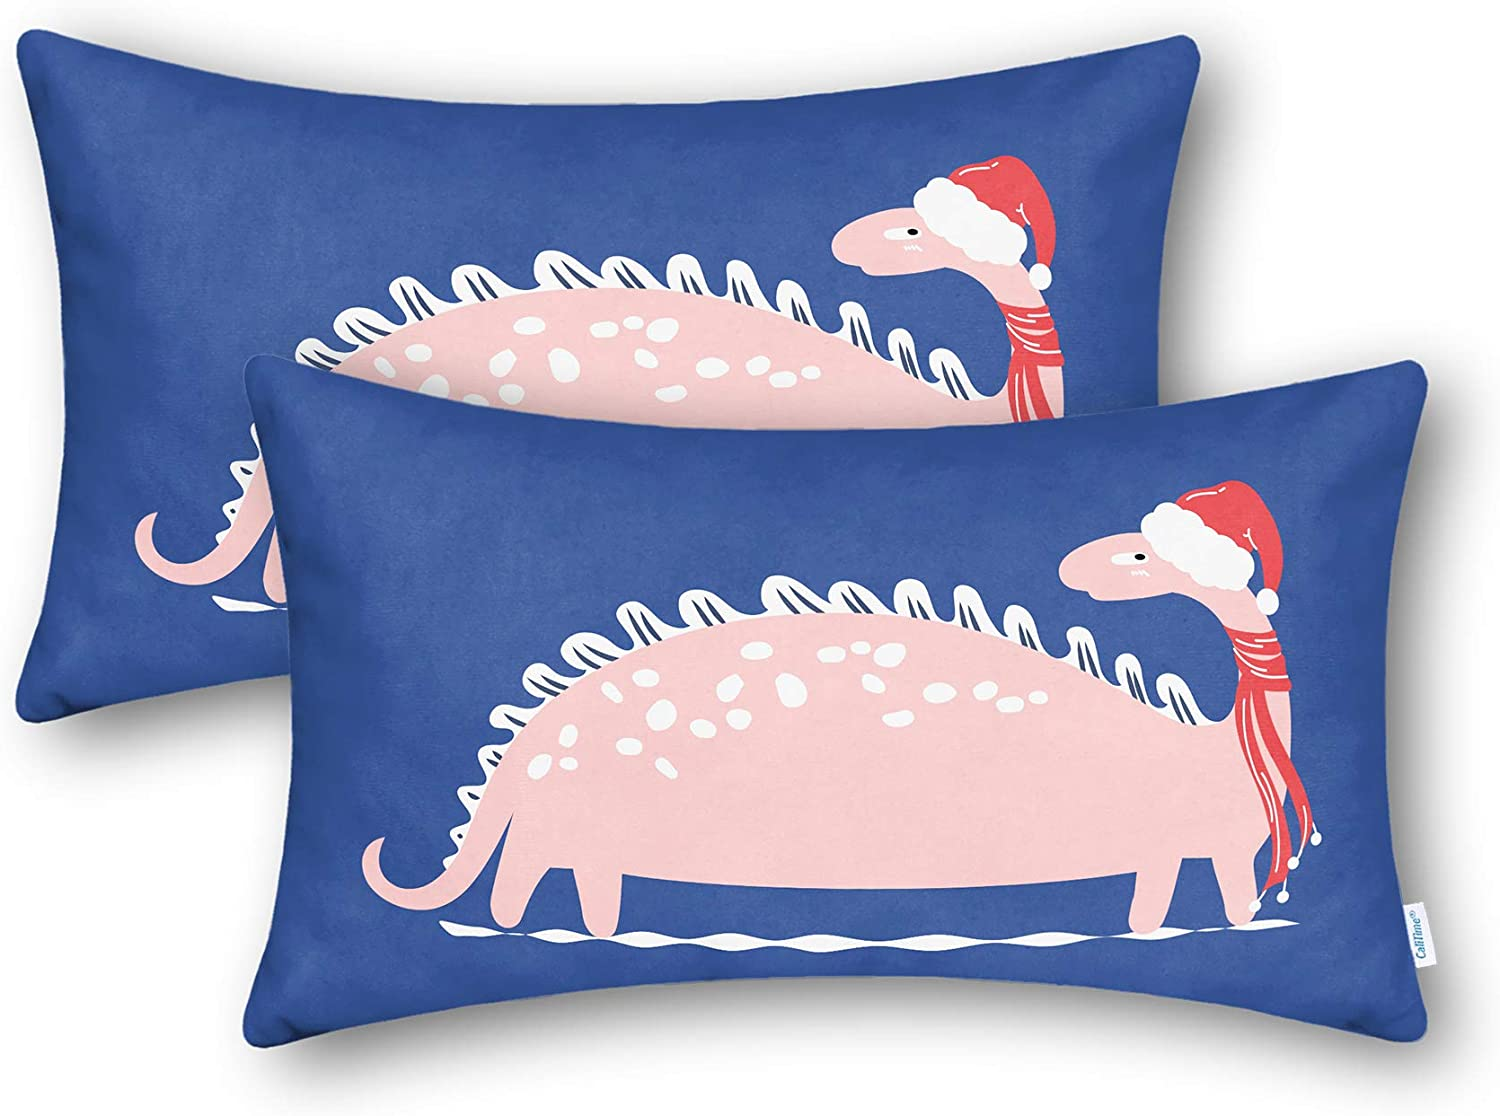 CaliTime Throw Pillow Cases Pack of 2 Cozy Fleece Christmas Hat Scarf Long Pink Dinosaur Printed Cushion Covers for Couch Sofa Bedroom 12 X 20 Inches Navy Blue